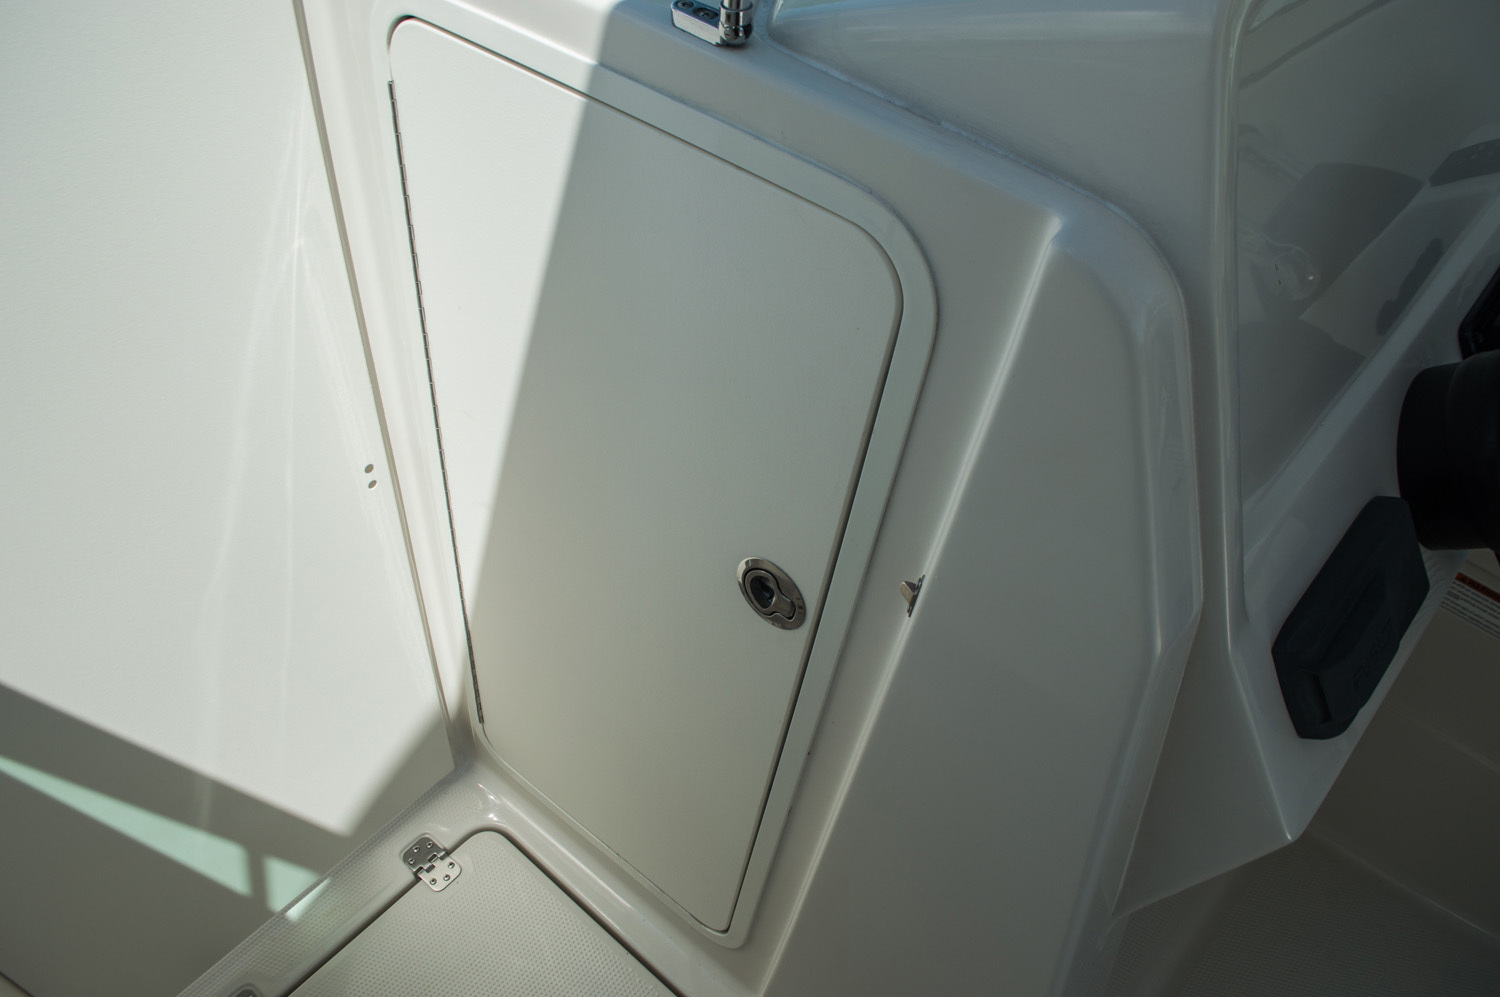 Thumbnail 24 for New 2016 Sailfish 275 Dual Console boat for sale in West Palm Beach, FL